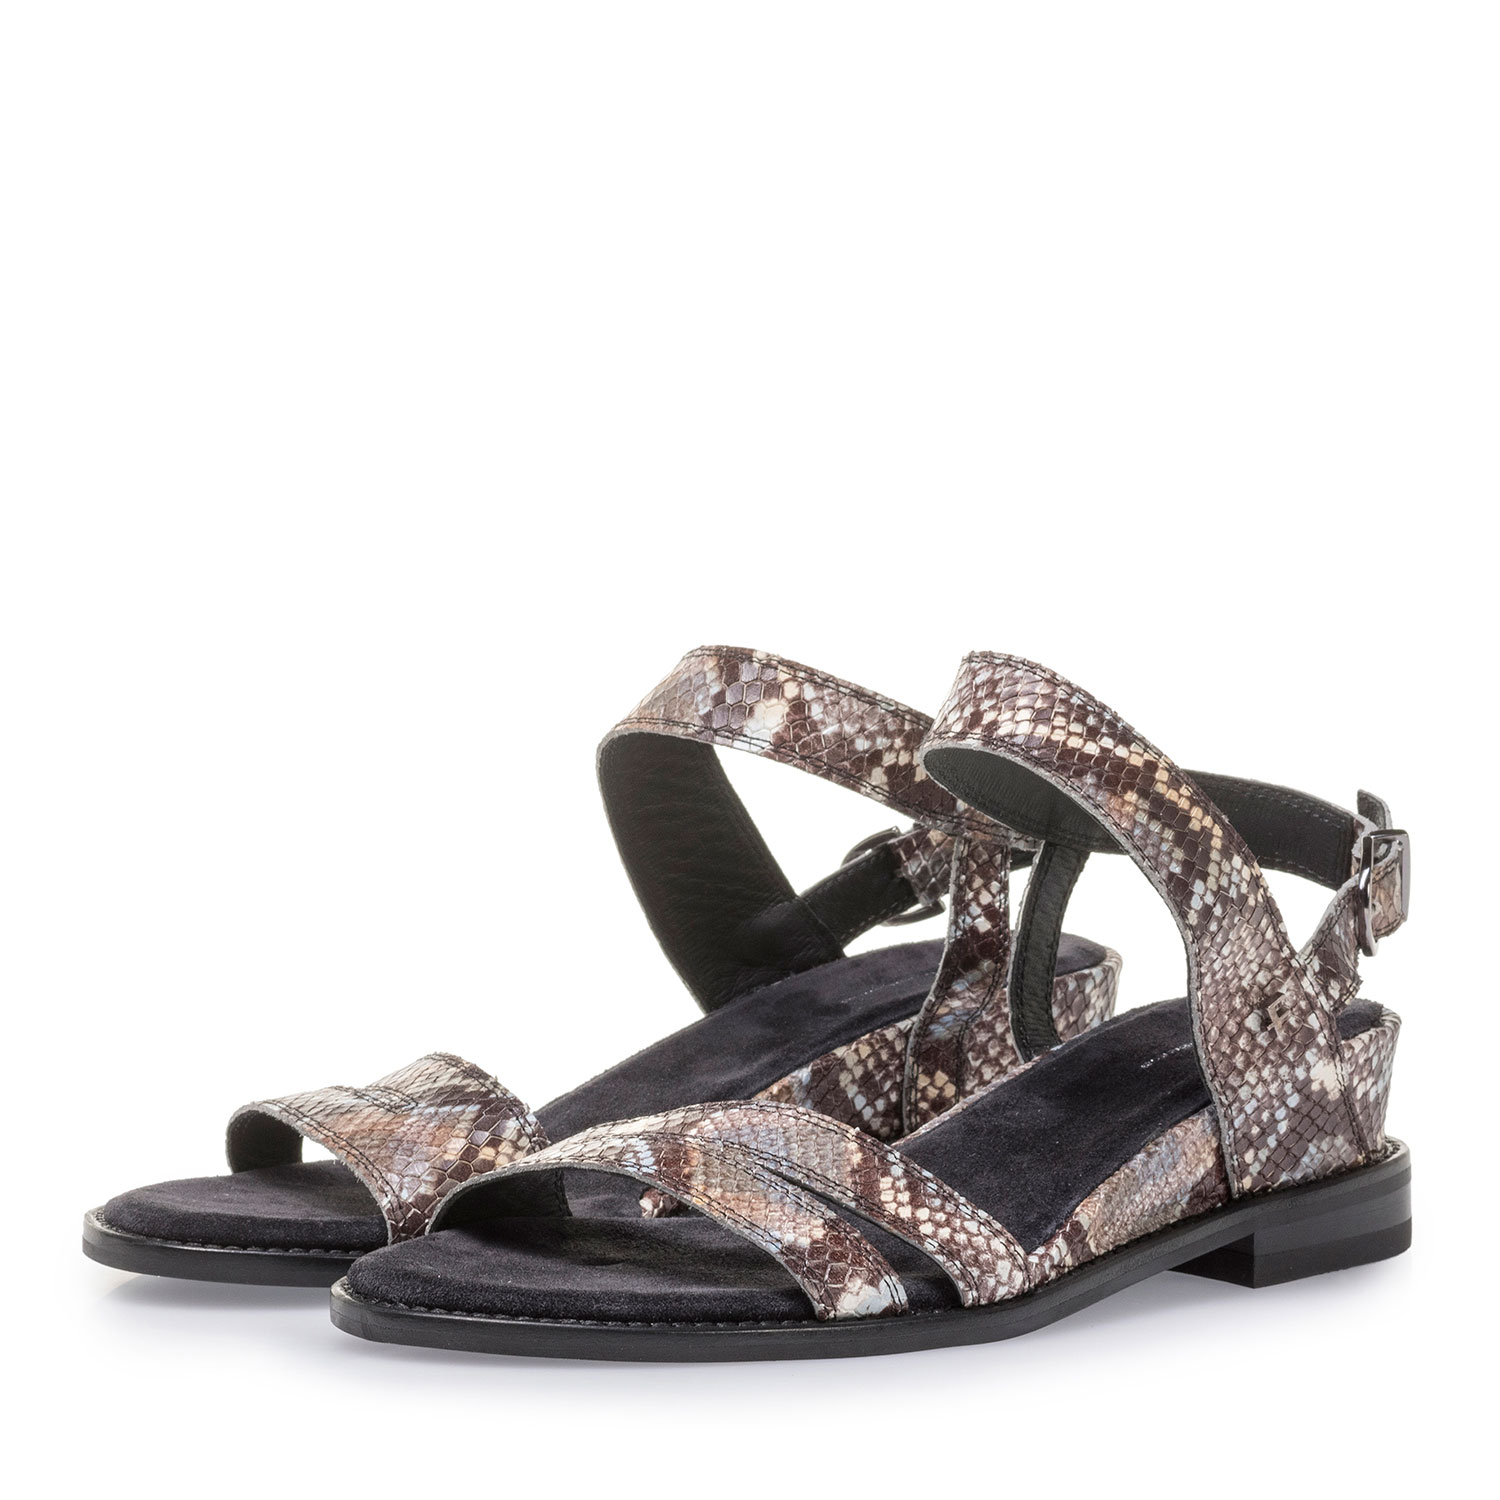 85931/01 - Brown and white leather sandals with snake print